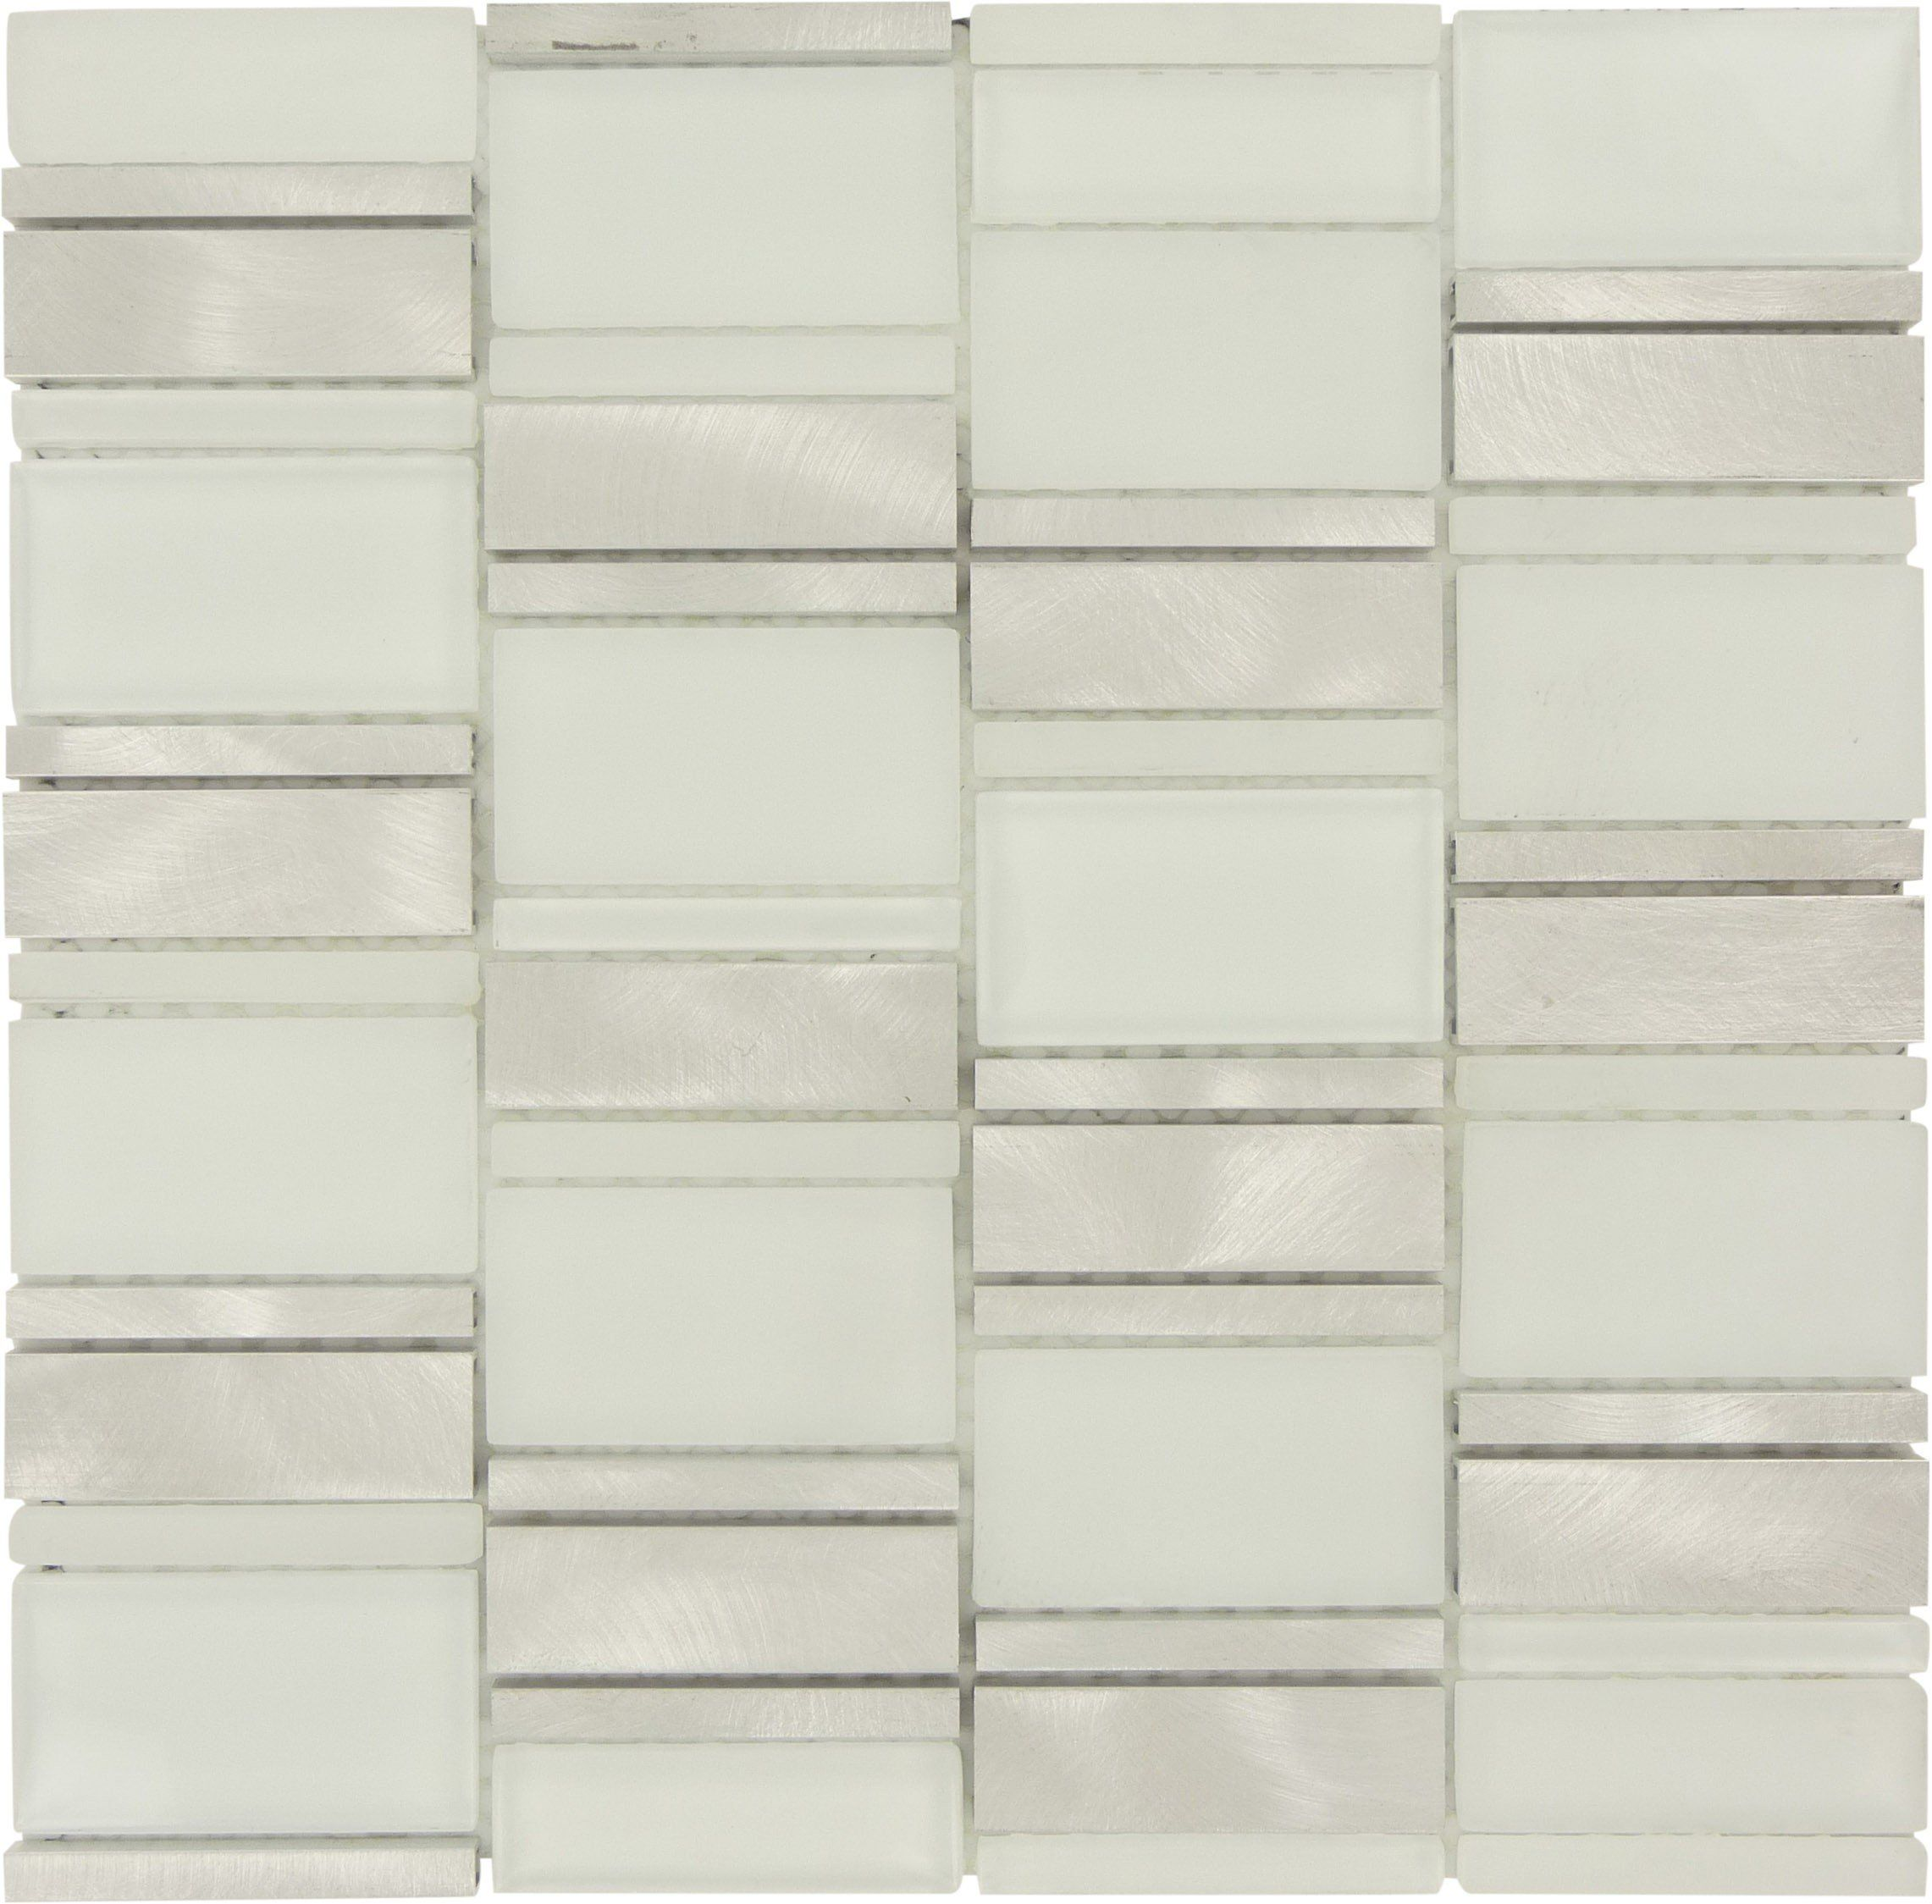 Unique Shapes Silver Glass Metal Unique Shapes Tile Frosted Brushed Ft Wf 102 Tile Installation Metal Tile Metal